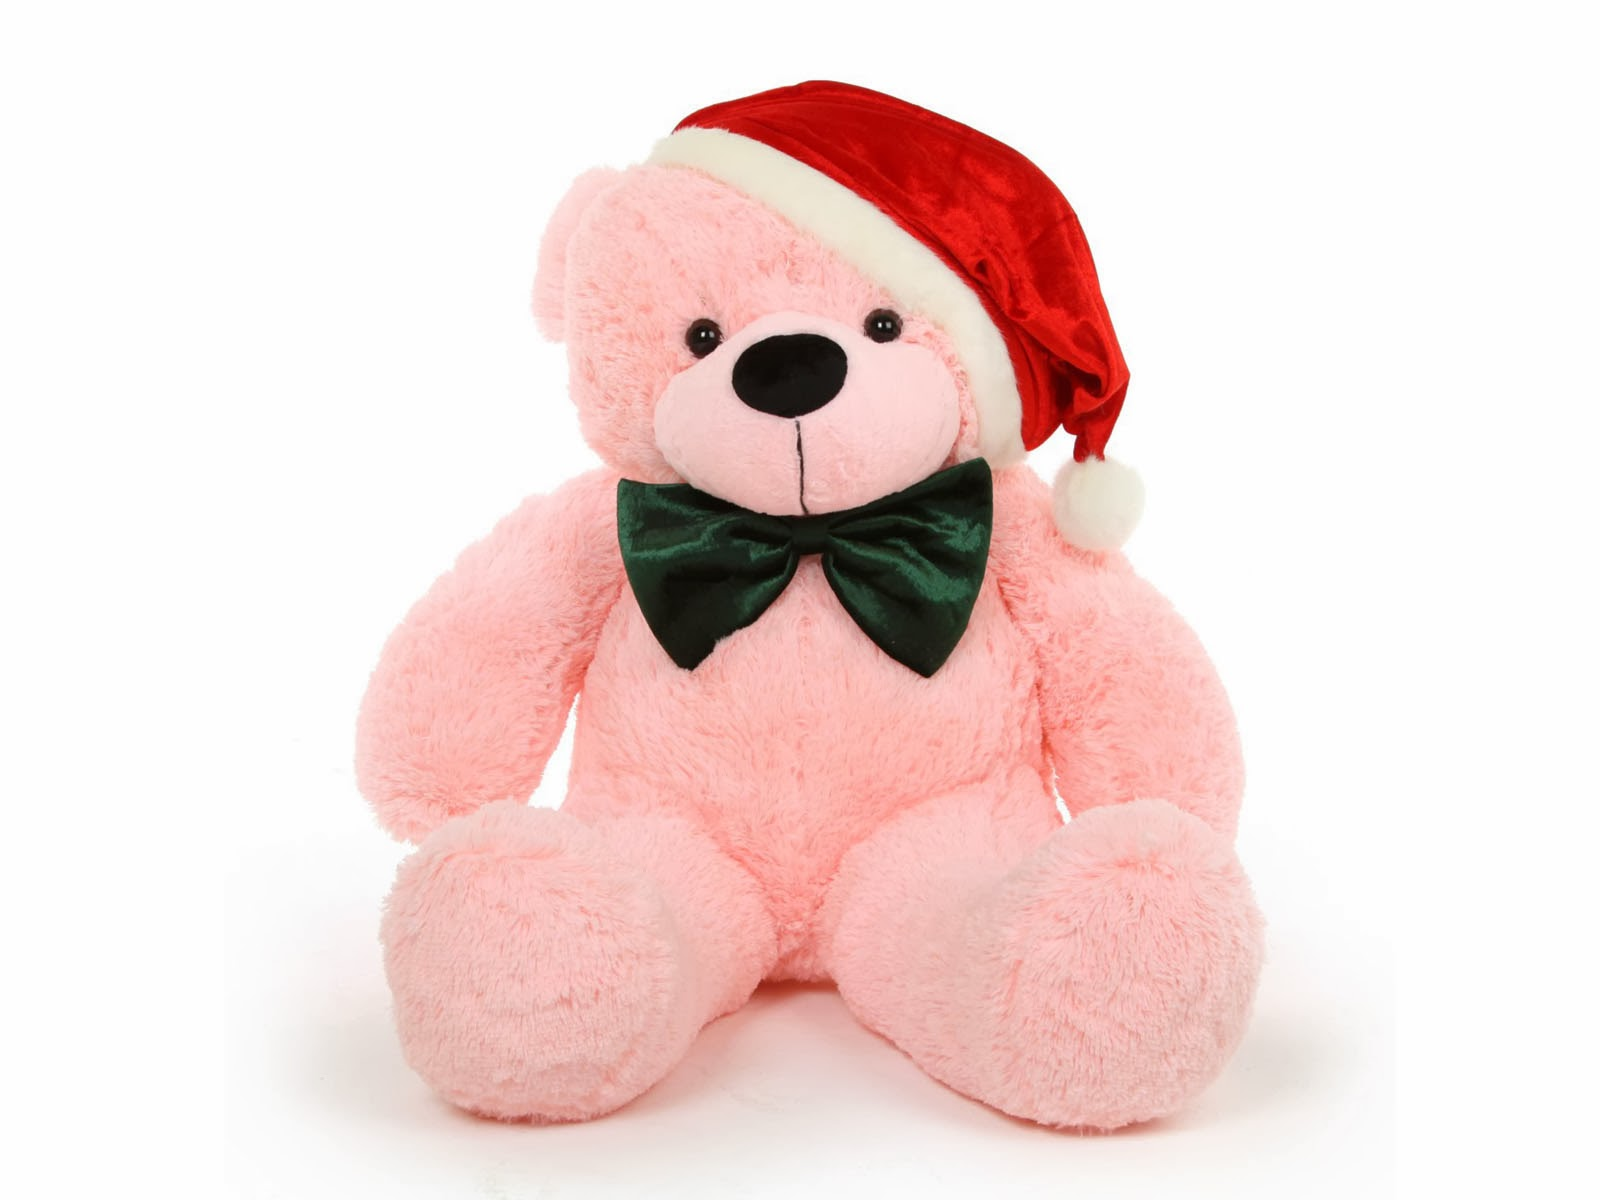 Christmas-Teddy-Bear-with santa hat-Wallpapers.jpg